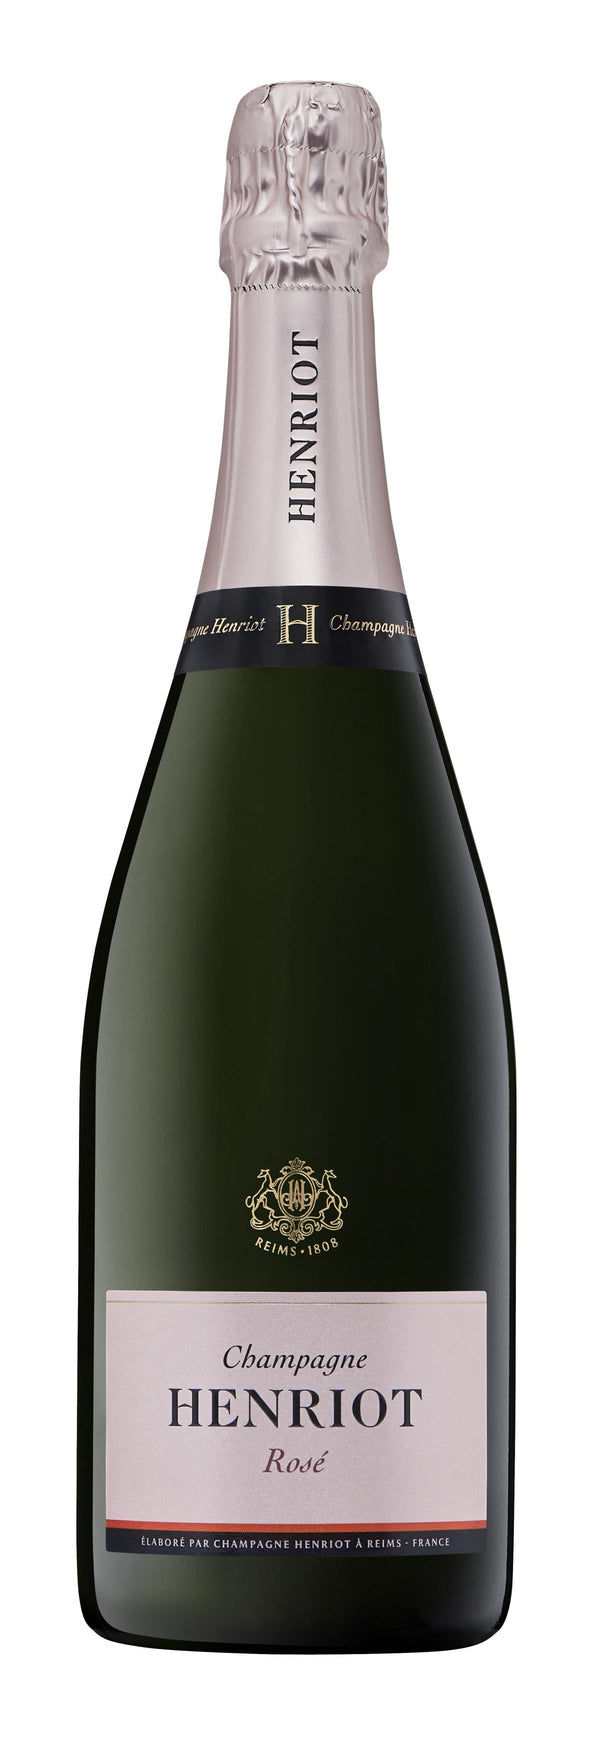 Henriot Rose Champagne NV 750ml